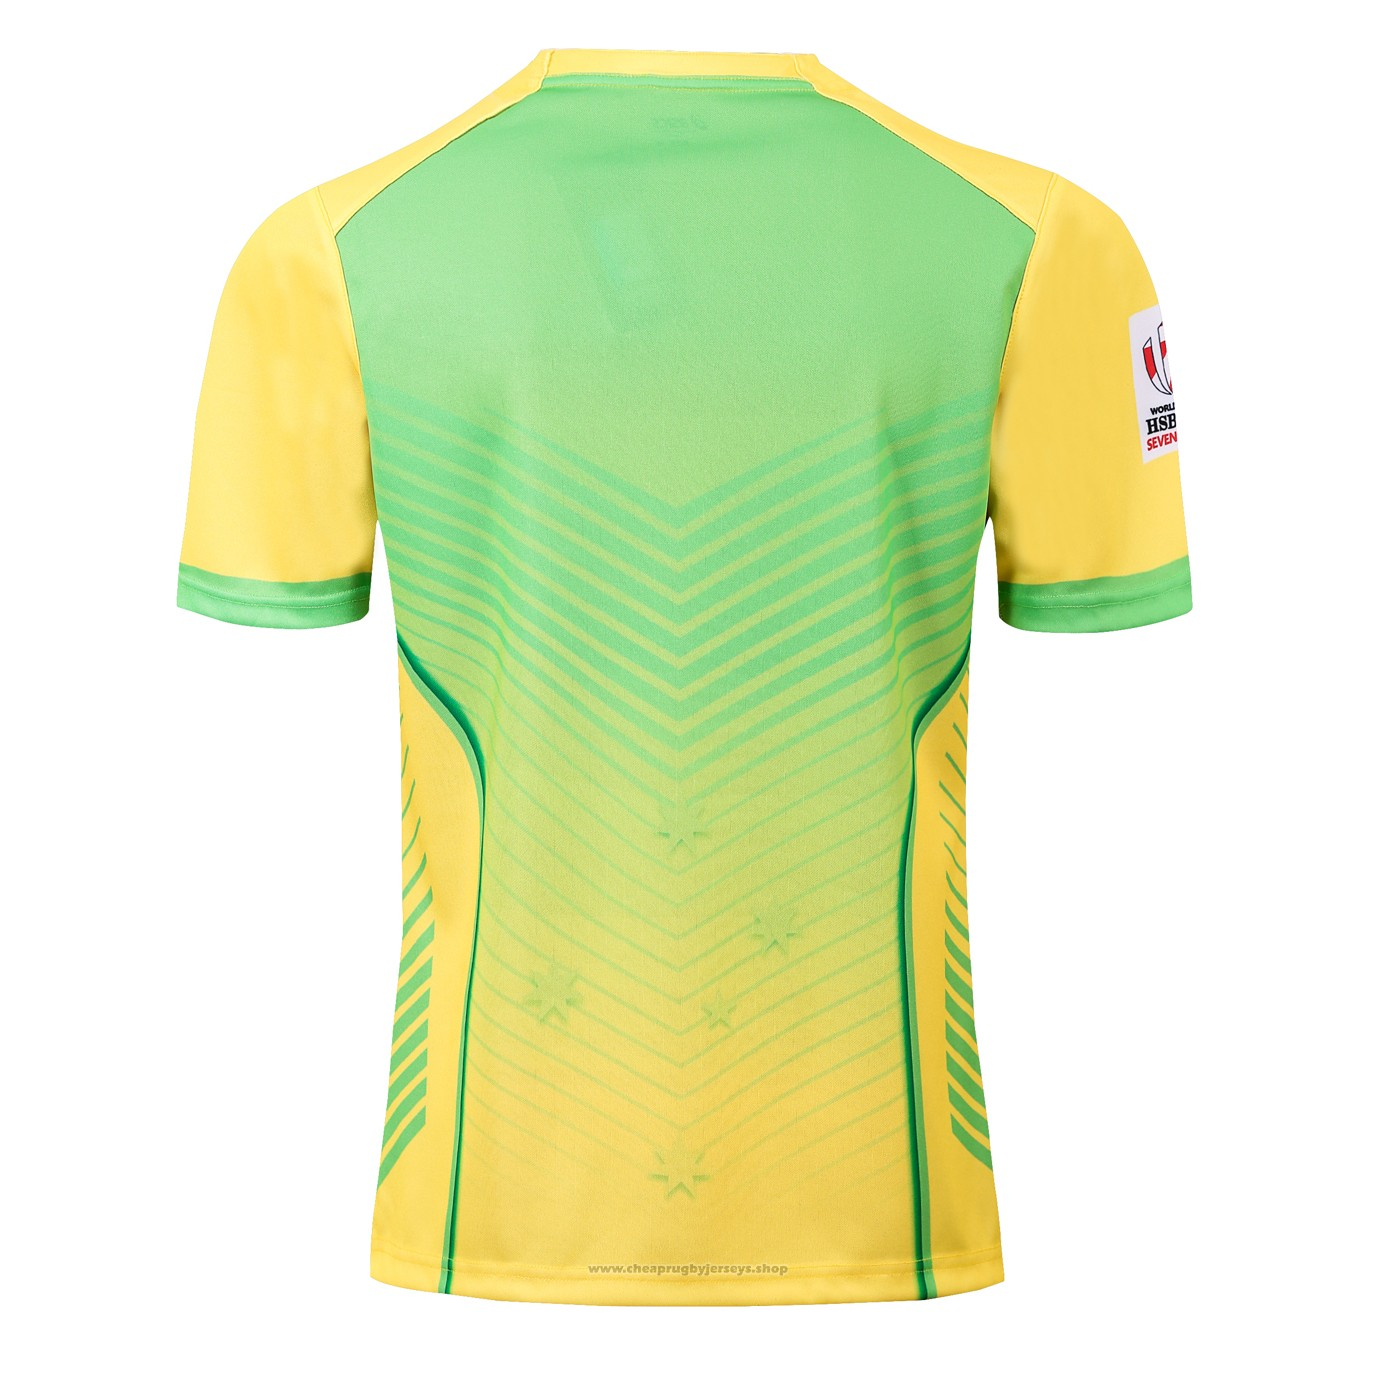 Australia 7s Rugby Jersey 2019-2020 Home